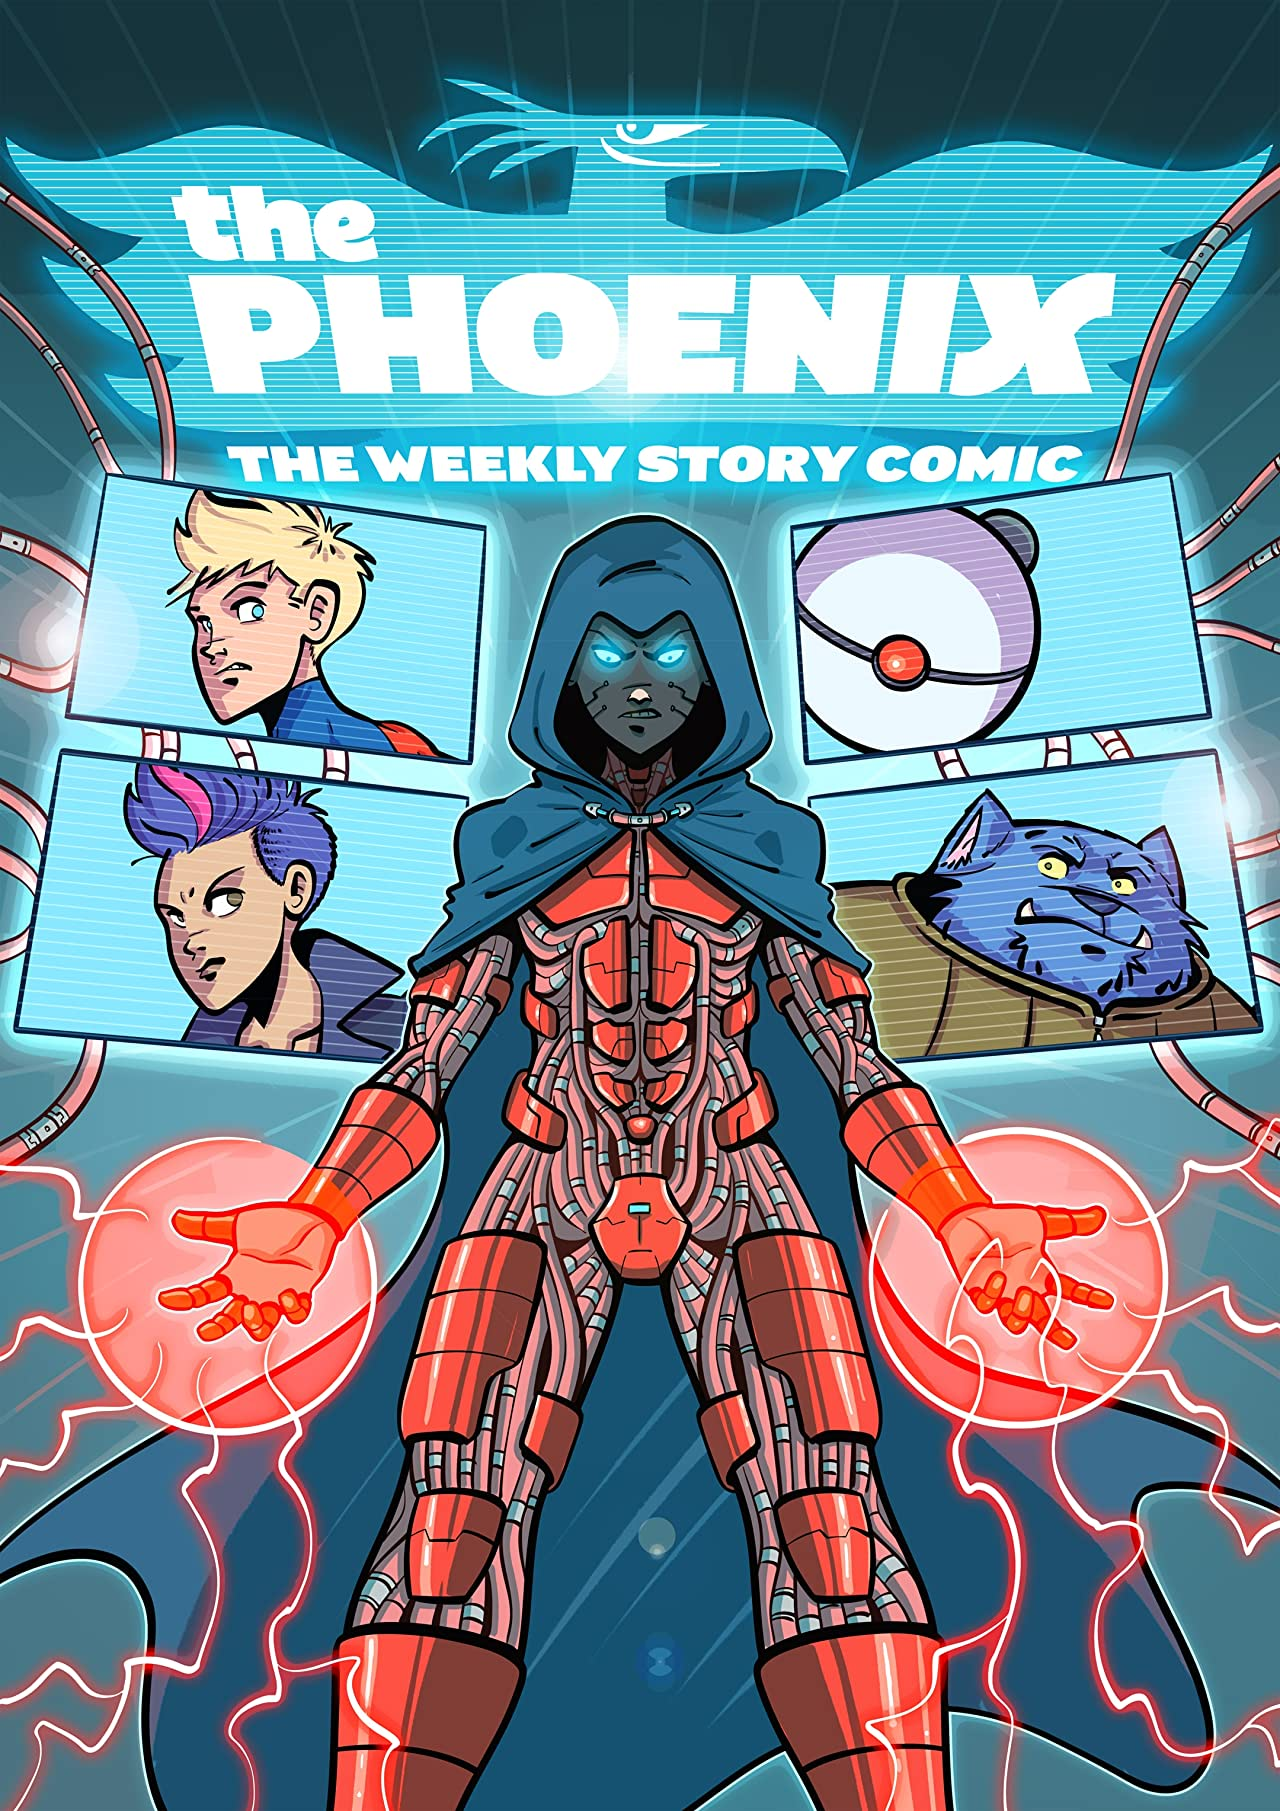 The Phoenix #196: The Weekly Story Comic